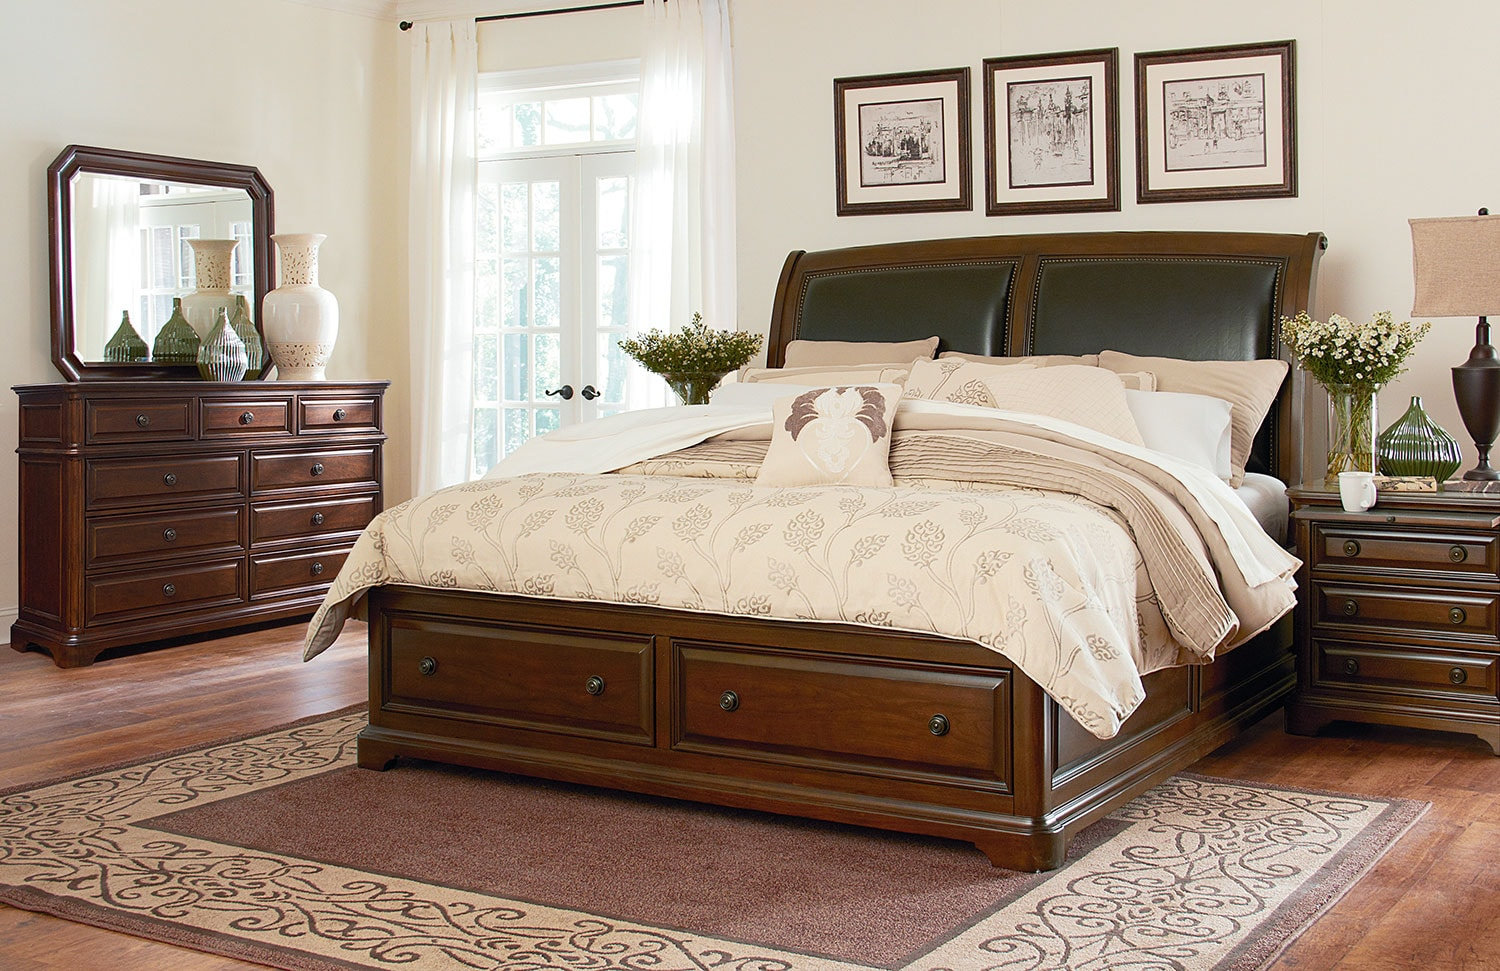 Huntington 4-Piece Queen Storage Bedroom Set - Brown Cherry